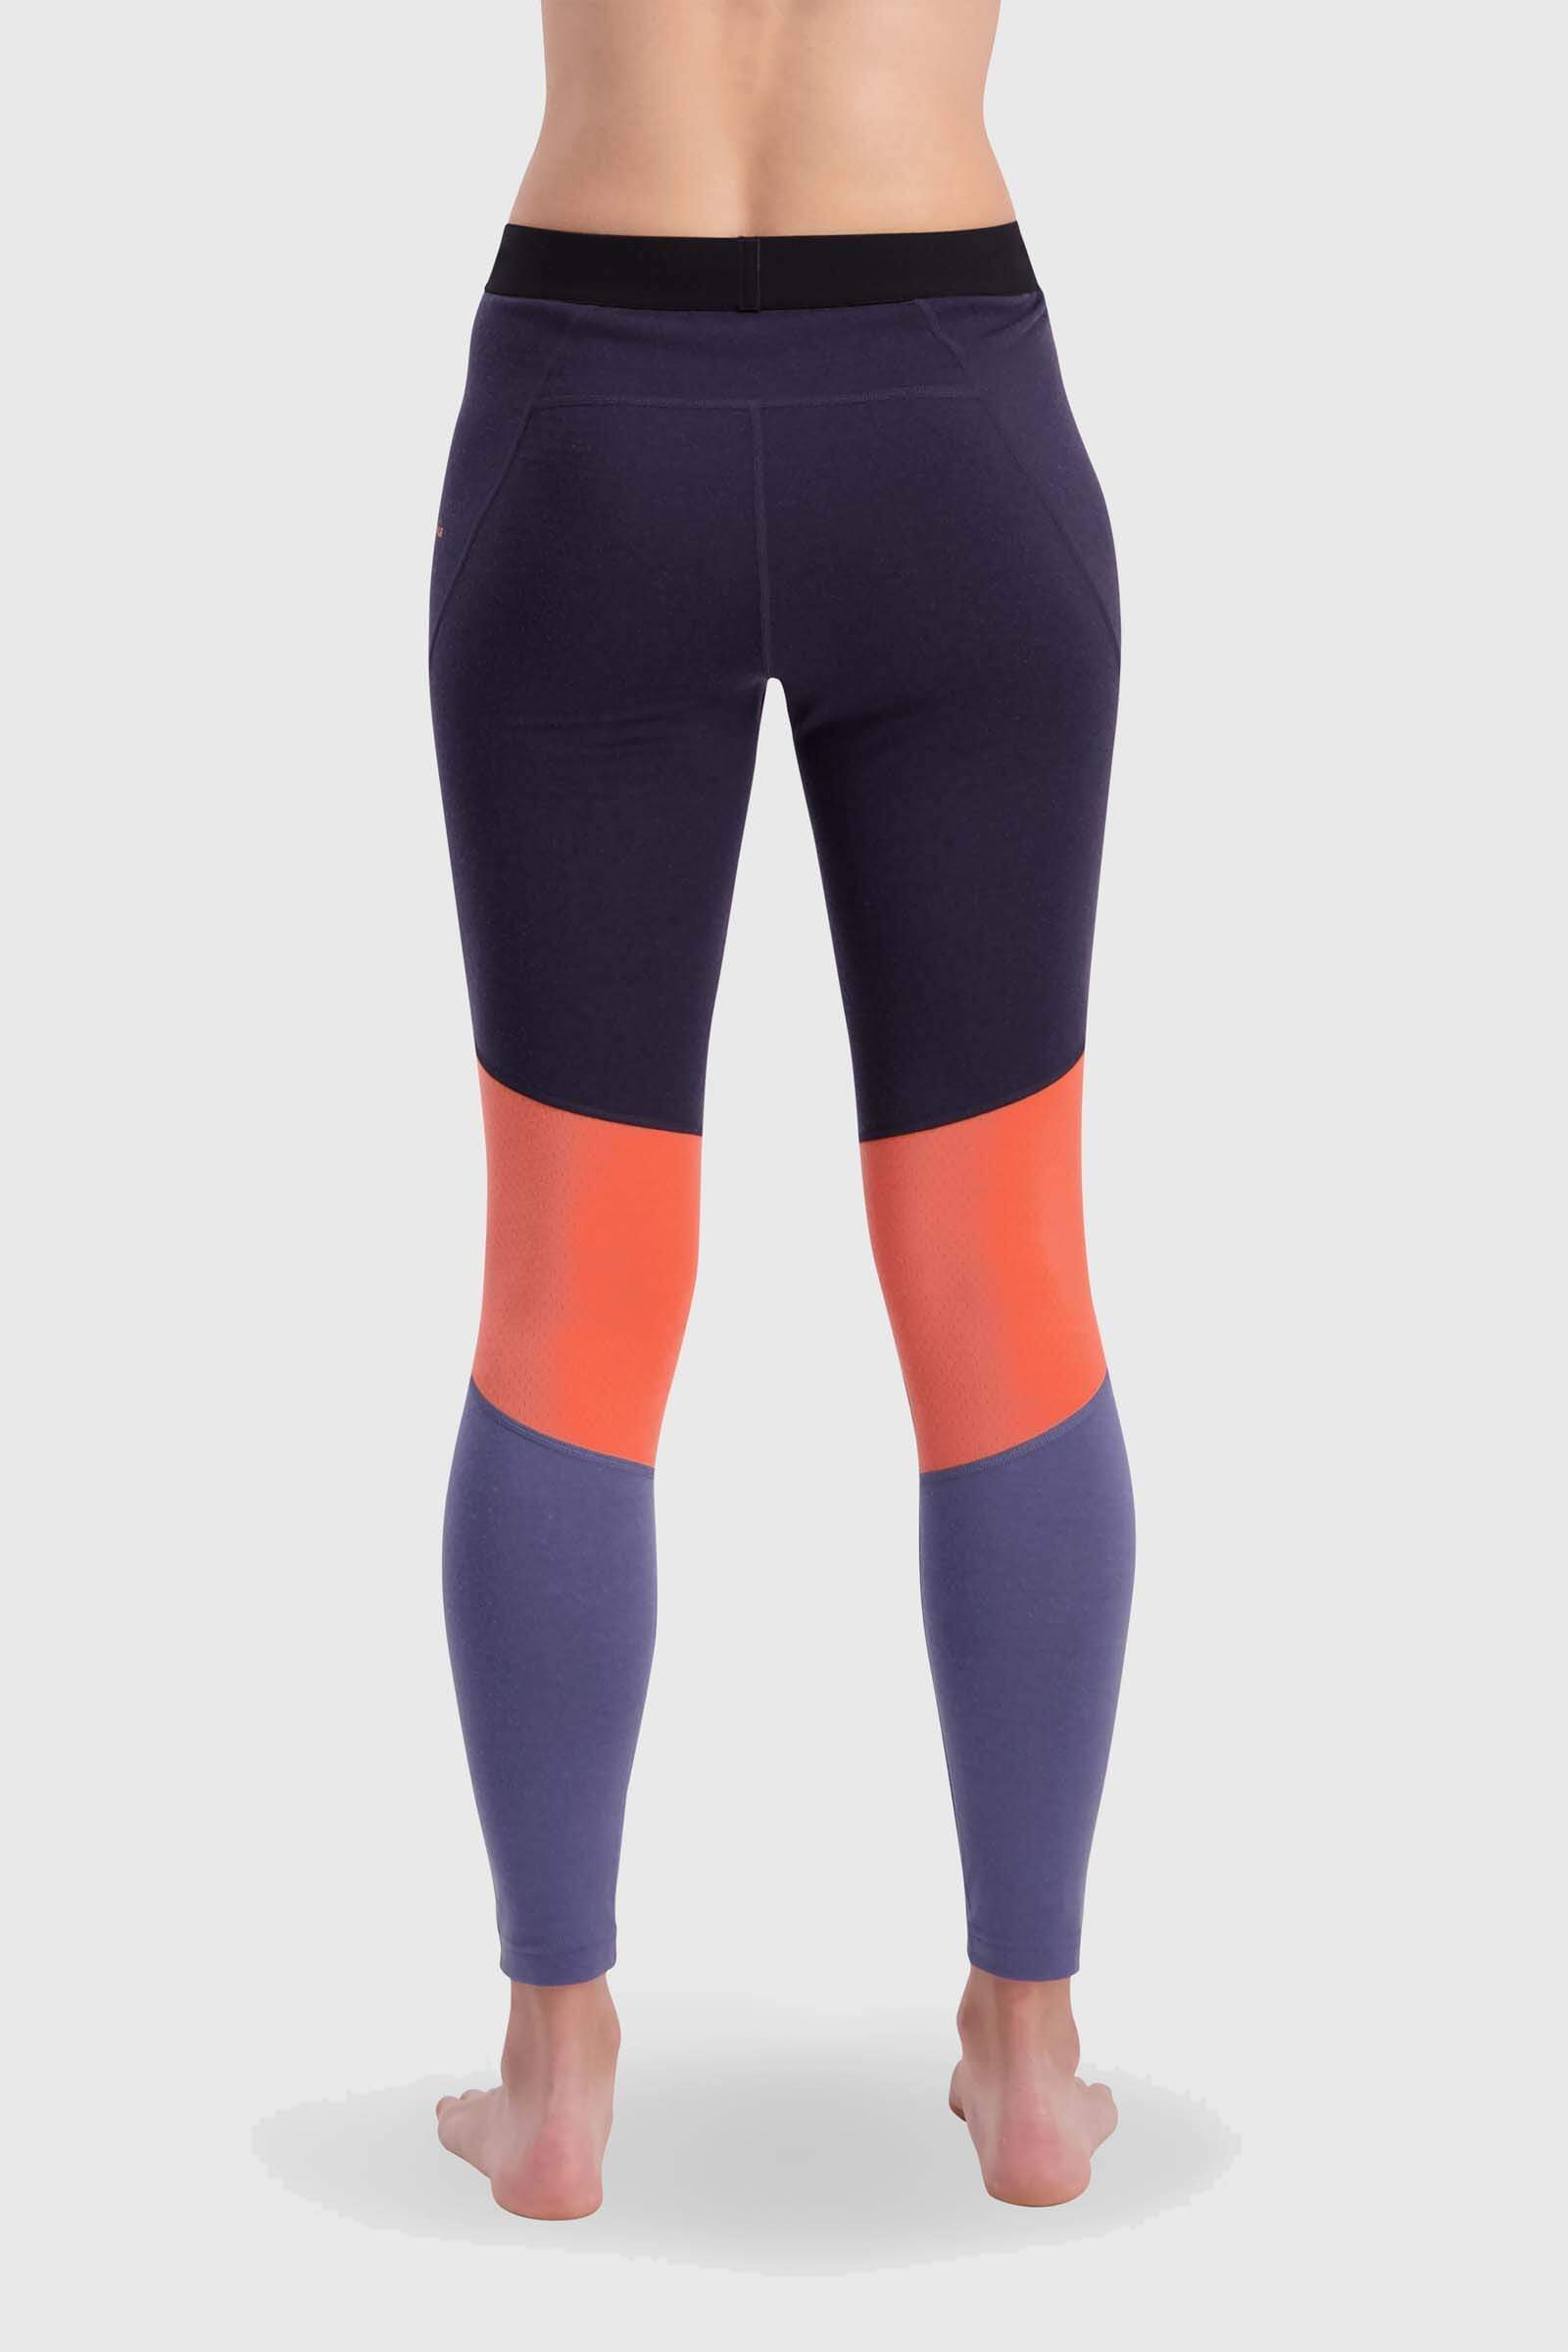 Olympus 3.0 Legging - 9 Iron